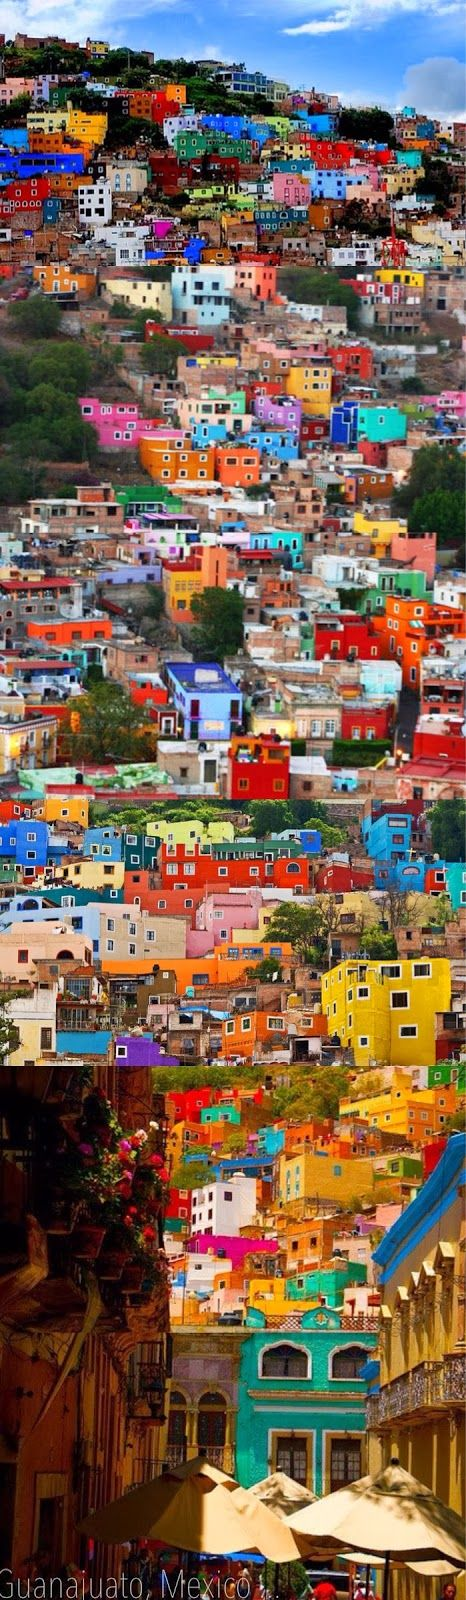 Guanajuato, Mexico. Never had much interest in going to Mexico but this looks wonderful! Exactly why I have always wanted to go there. Heading there soon!!